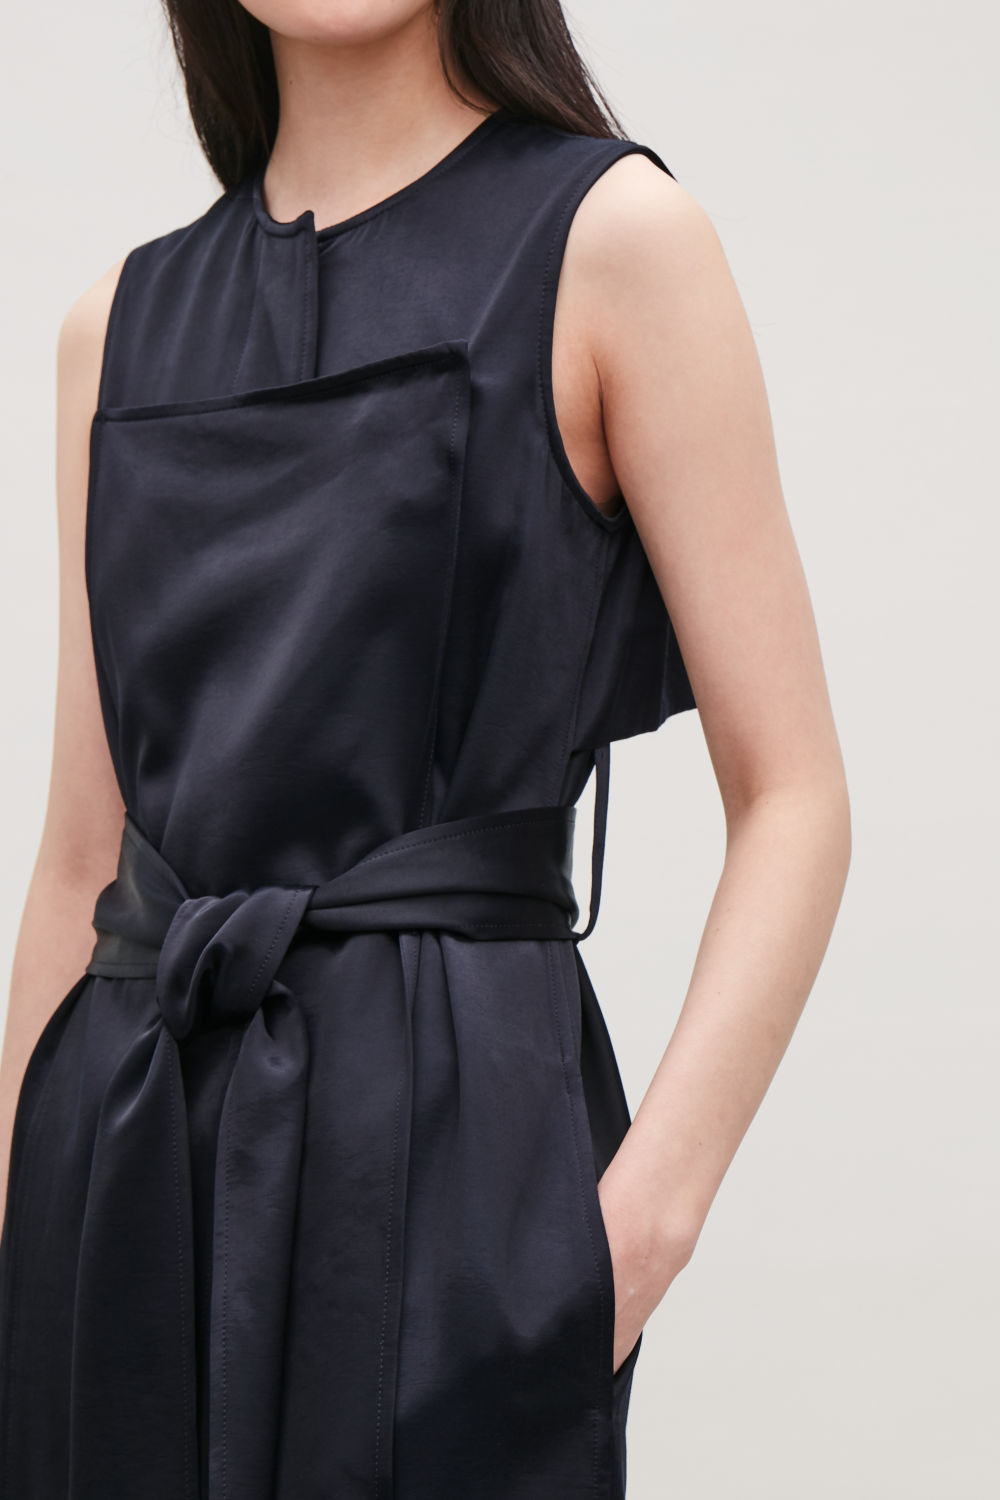 a60dcc43468d3 TRENCH-DETAIL SMOOTH SLEEVELESS DRESS ...